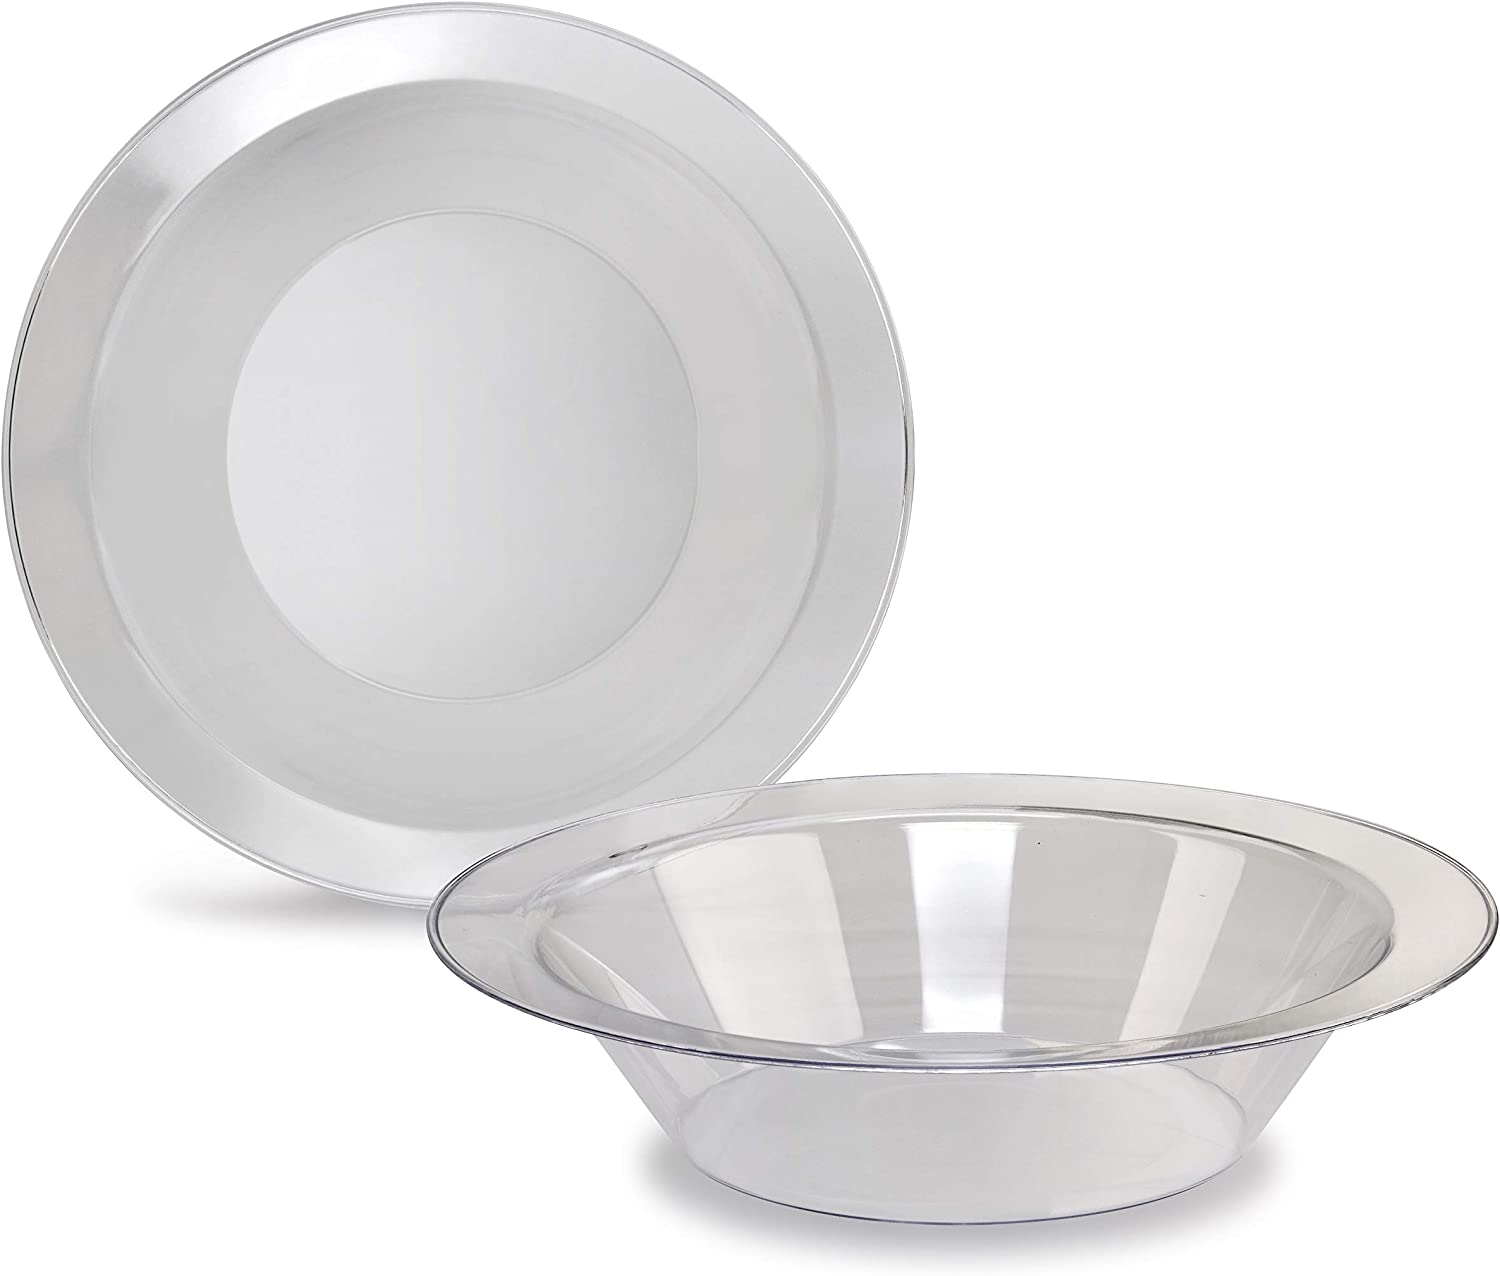 OCCASIONS 120 Bowls Pack, Heavyweight Wedding Party Disposable Plastic Bowls (14oz Soup Bowl, Clear) 712PxOuqanL